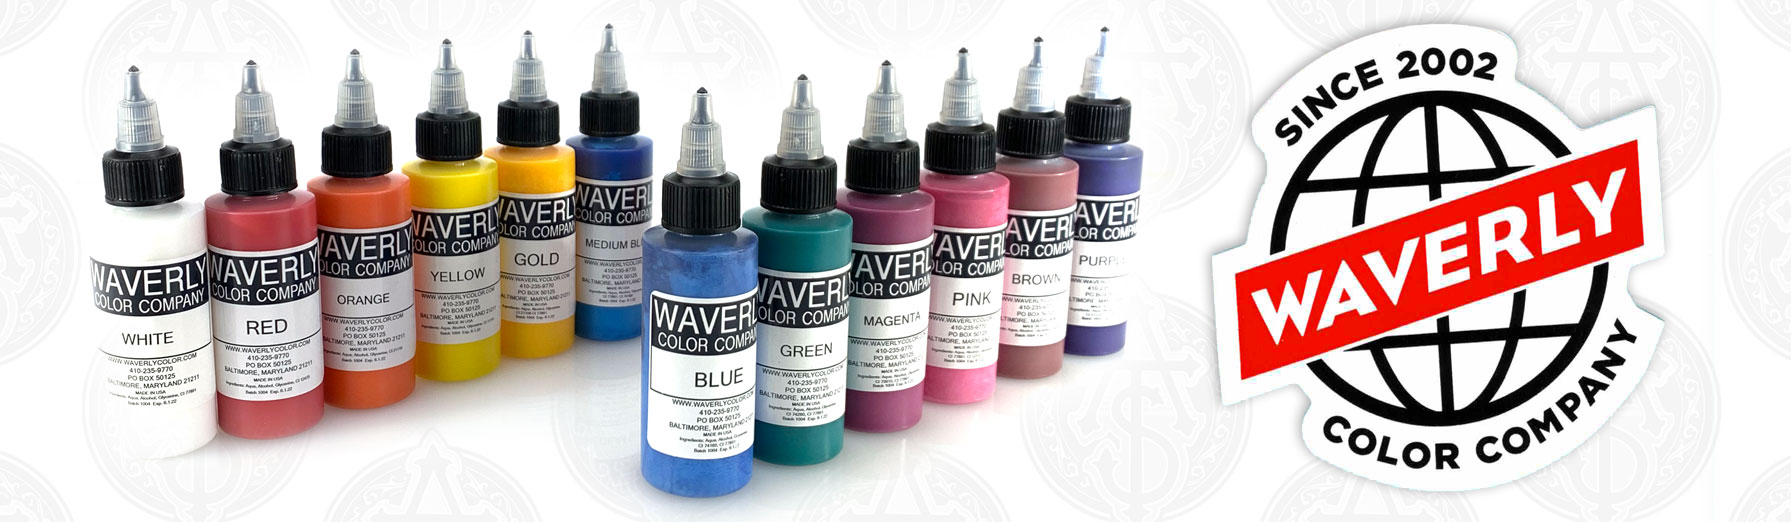 Waverly Color Co.